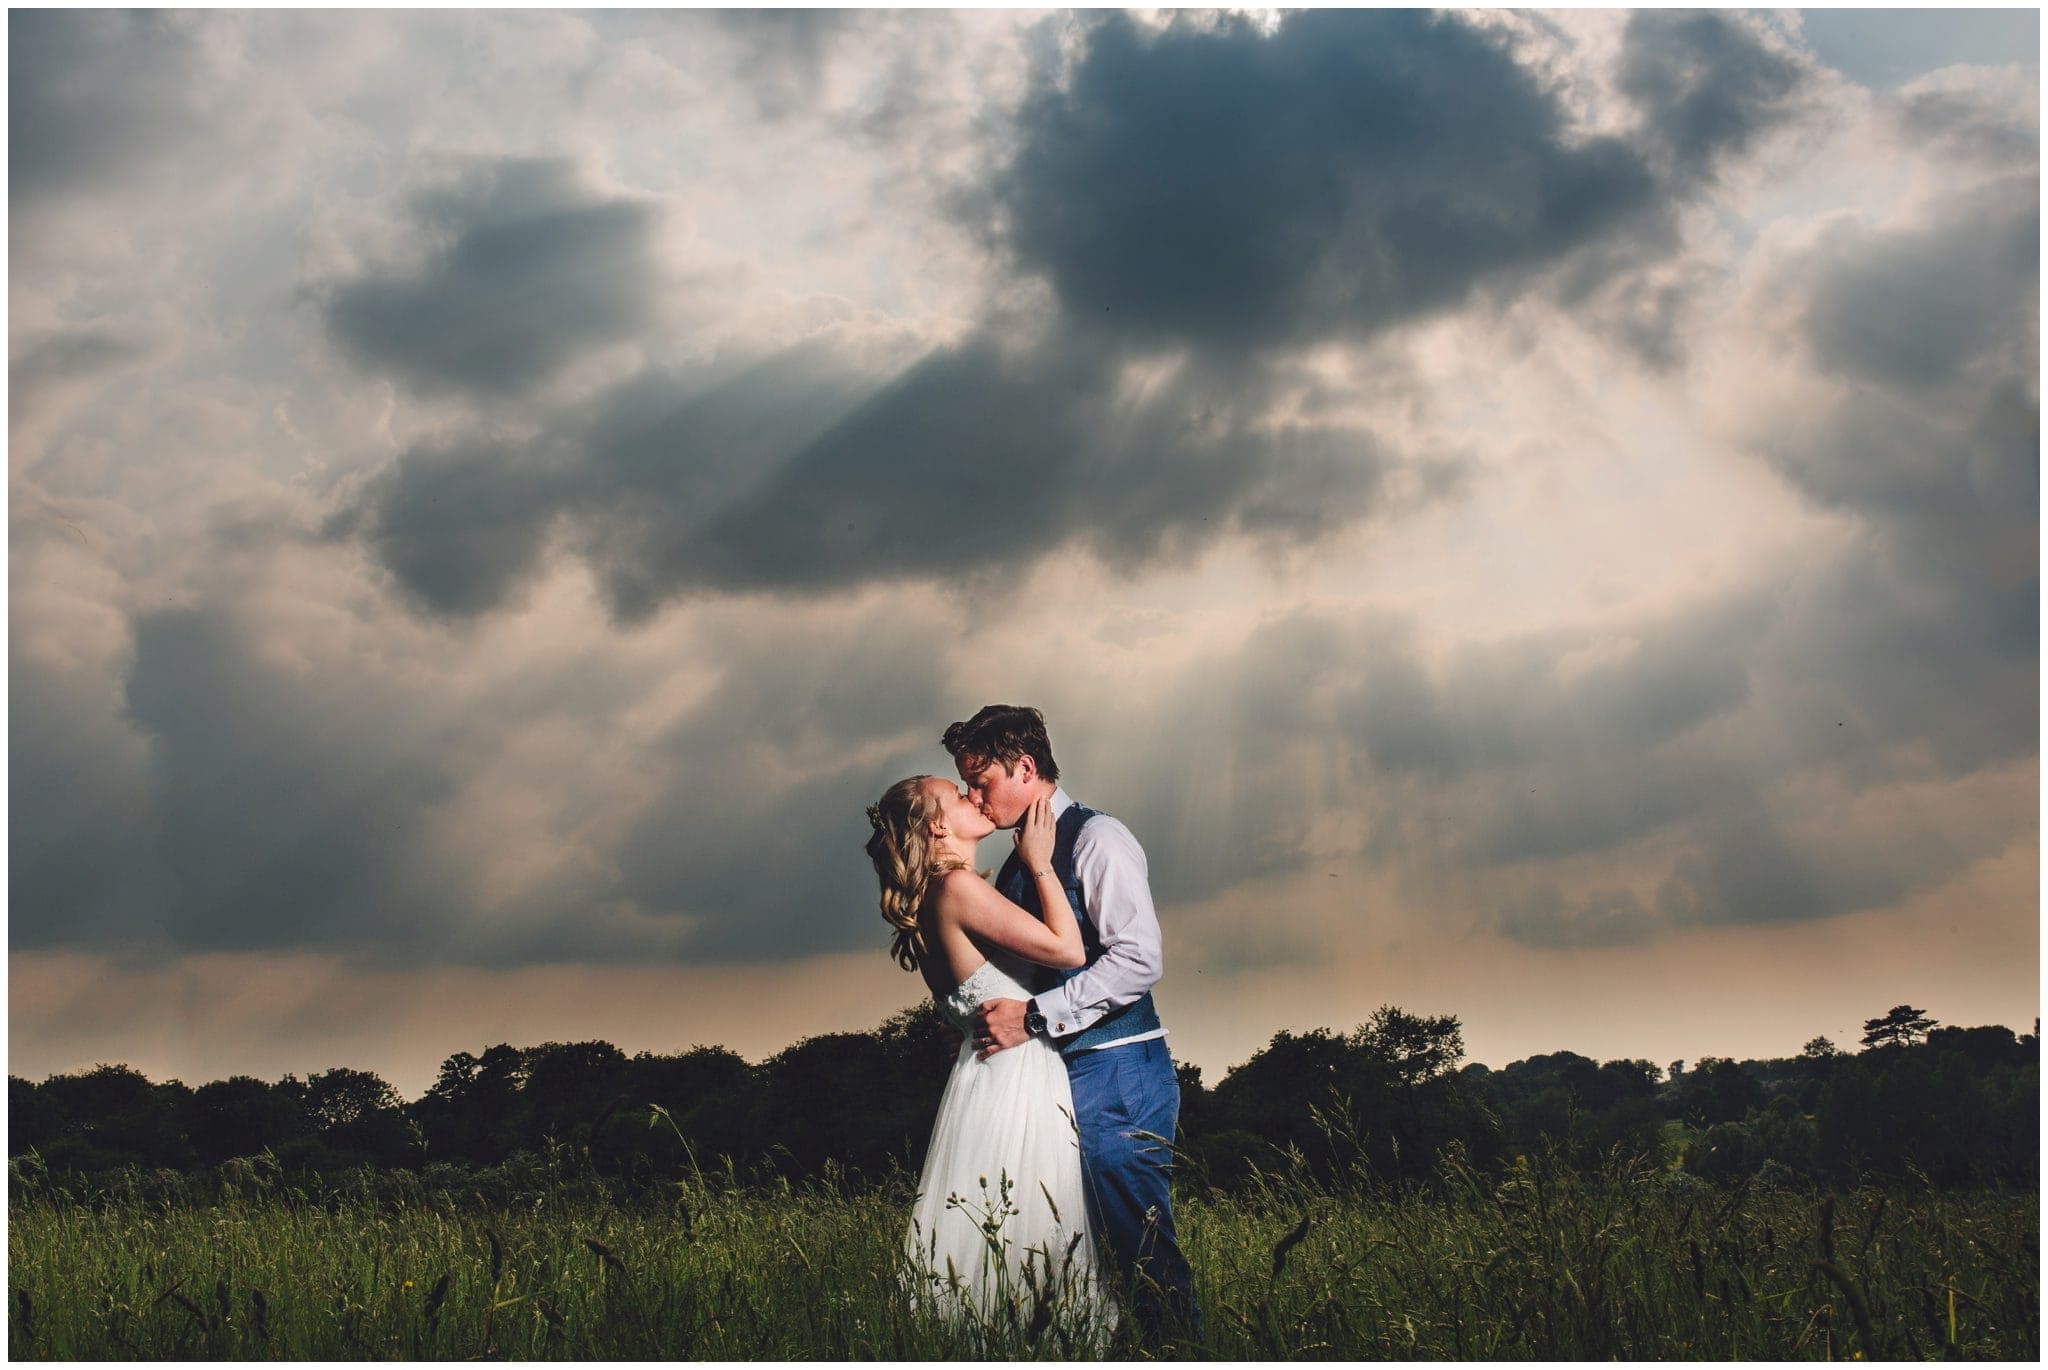 Dovecote Barn Wedding Photographer – Ben & Lynsey